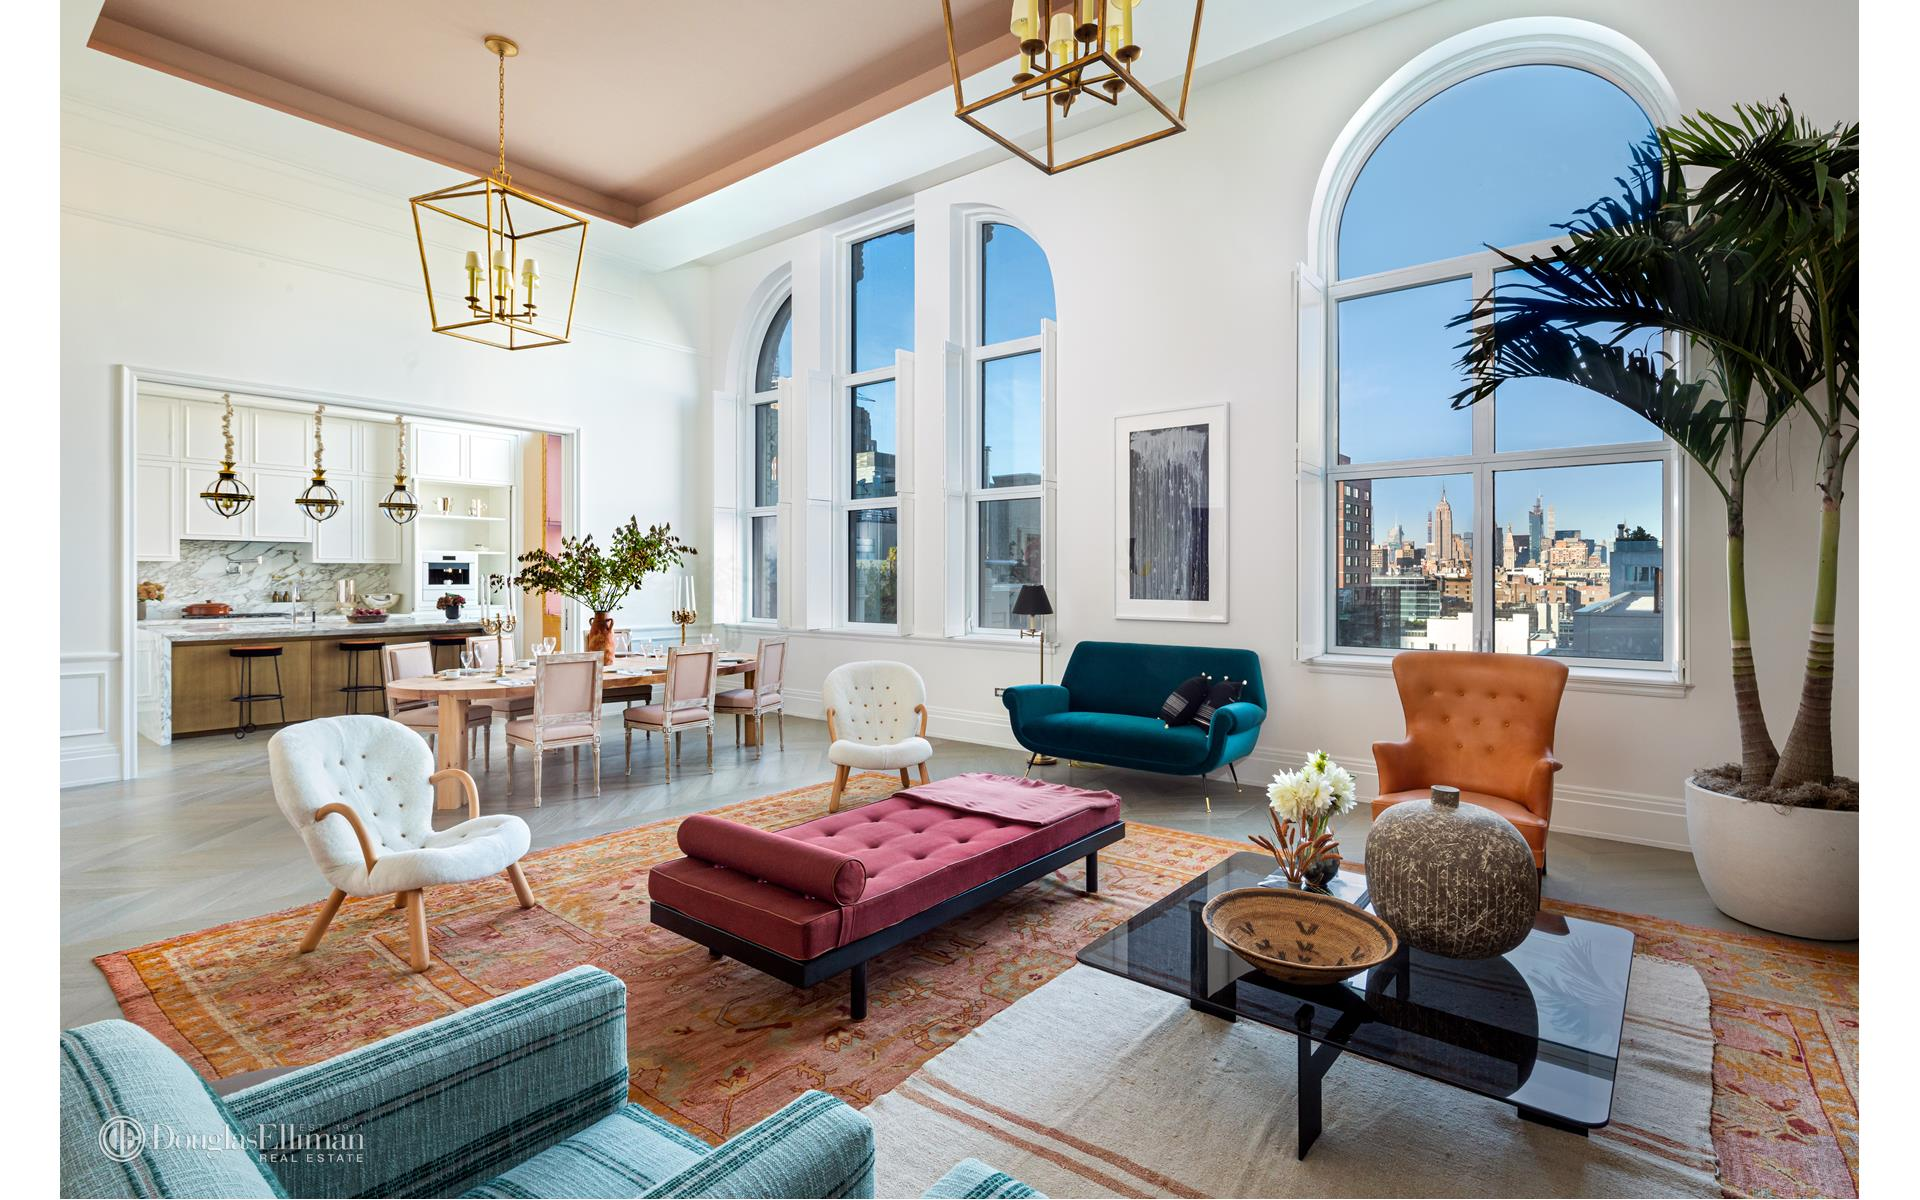 Immediate Occupancy.In honor of ELLE Décor's 30th anniversary, A-List interior designer Neal Beckstedt was enlisted to design THE HOUSE OF ELLE DÉCOR, a penthouse that commemorates the best in style and design located in Salon Penthouse 14D, a one-of-kind residence set within the Crown Collection at 108 Leonard.This 4,150 square foot 3-bedroom, 3.5-bath residence features impressive scale, volume, and character. Upon arrival, a discreet entry leads to an expansive great room featuring architectural windows of epic proportion. The great room has exceptional ceiling heights of approximately 15 feet, one of only a few residences with such dramatic scale found within 108 Leonard. Within the generously sized windowed kitchen, Scavolini cabinetry, custom designed by Jeffrey Beers International exclusively for 108 Leonard, is featured along with a Calacatta Vagli marble countertop, backsplash, and waterfall island replete with supplemental storage. The kitchen is also outfitted with premium appliances by Miele. The Primary suite, thoughtfully situated apart from the rest of the residence, features arched architectural windows, two walk-in closets, and a midnight kitchen. The elegant en suite master bathroom boasts high-honed Calacatta Mandria marble floors and walls with a separate glass enclosed shower, custom double vanity with Fantini polished chrome fixtures, two water closets and a freestanding soaking tub set along architectural, south-facing windows. Two secondary bedrooms with en suite bathrooms, positioned opposite the living areas, offer maximum privacy. A signature powder room with sculptural Nero Marquina marble sink, a library and a laundry room with washer and dryer complete this singular offering. Featuring a discreet drive-in motor reception including valet parking and three luxurious attended lobbies each with its own elevator bank, 108 Leonard offers both the intimate experience of a boutique building and the breadth of over 20,000 square feet of wellness